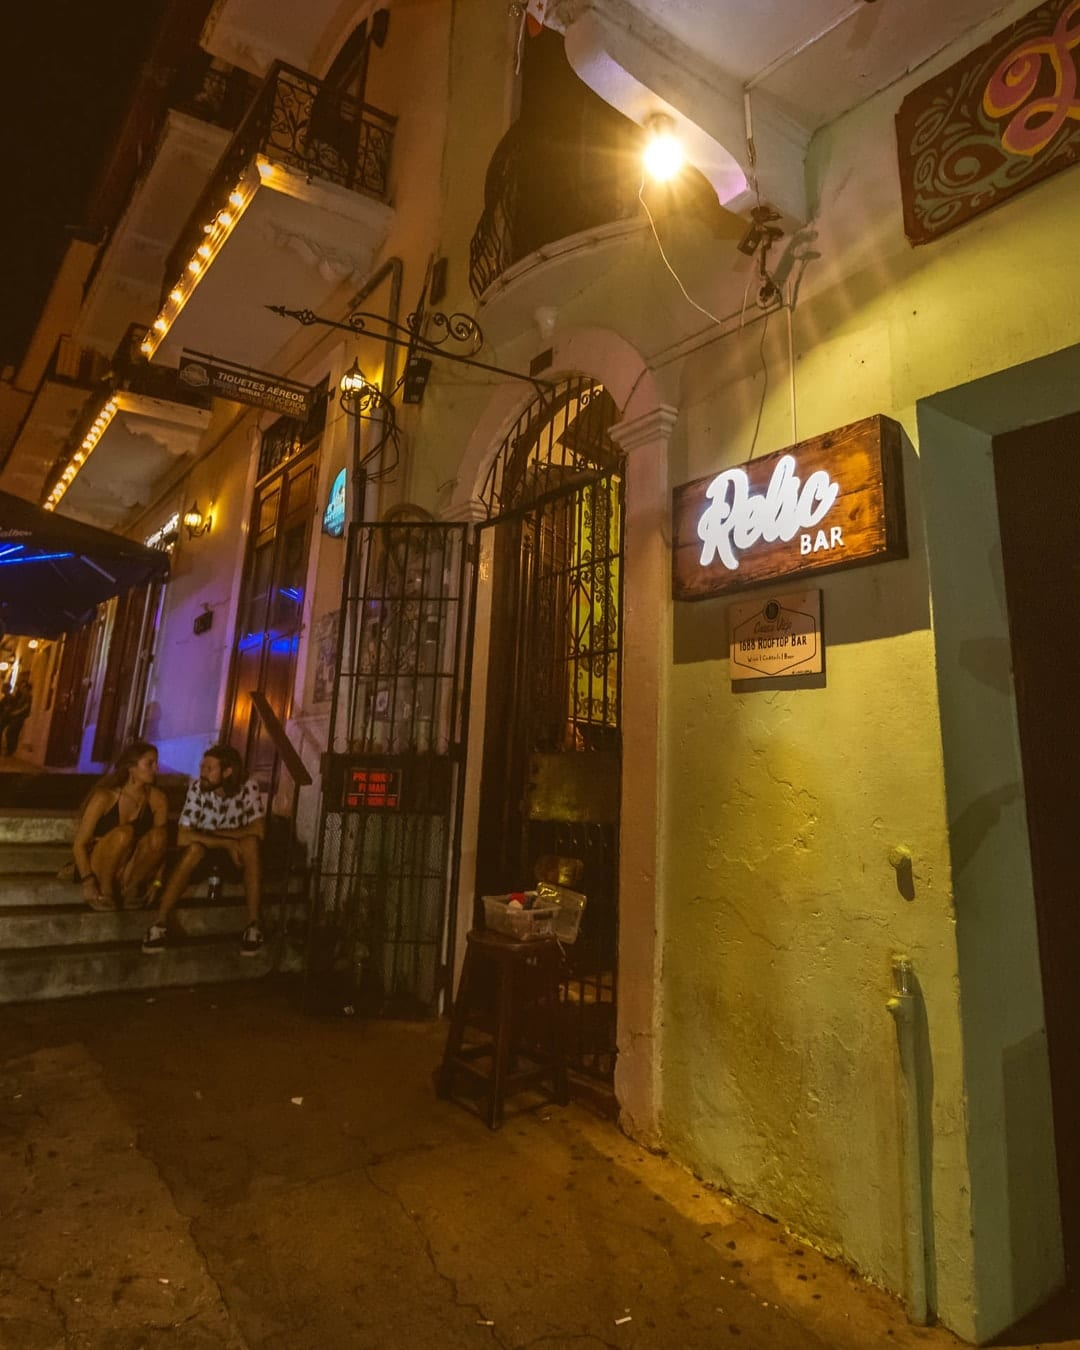 relic bar is in luna's castle hostel in casco viejo